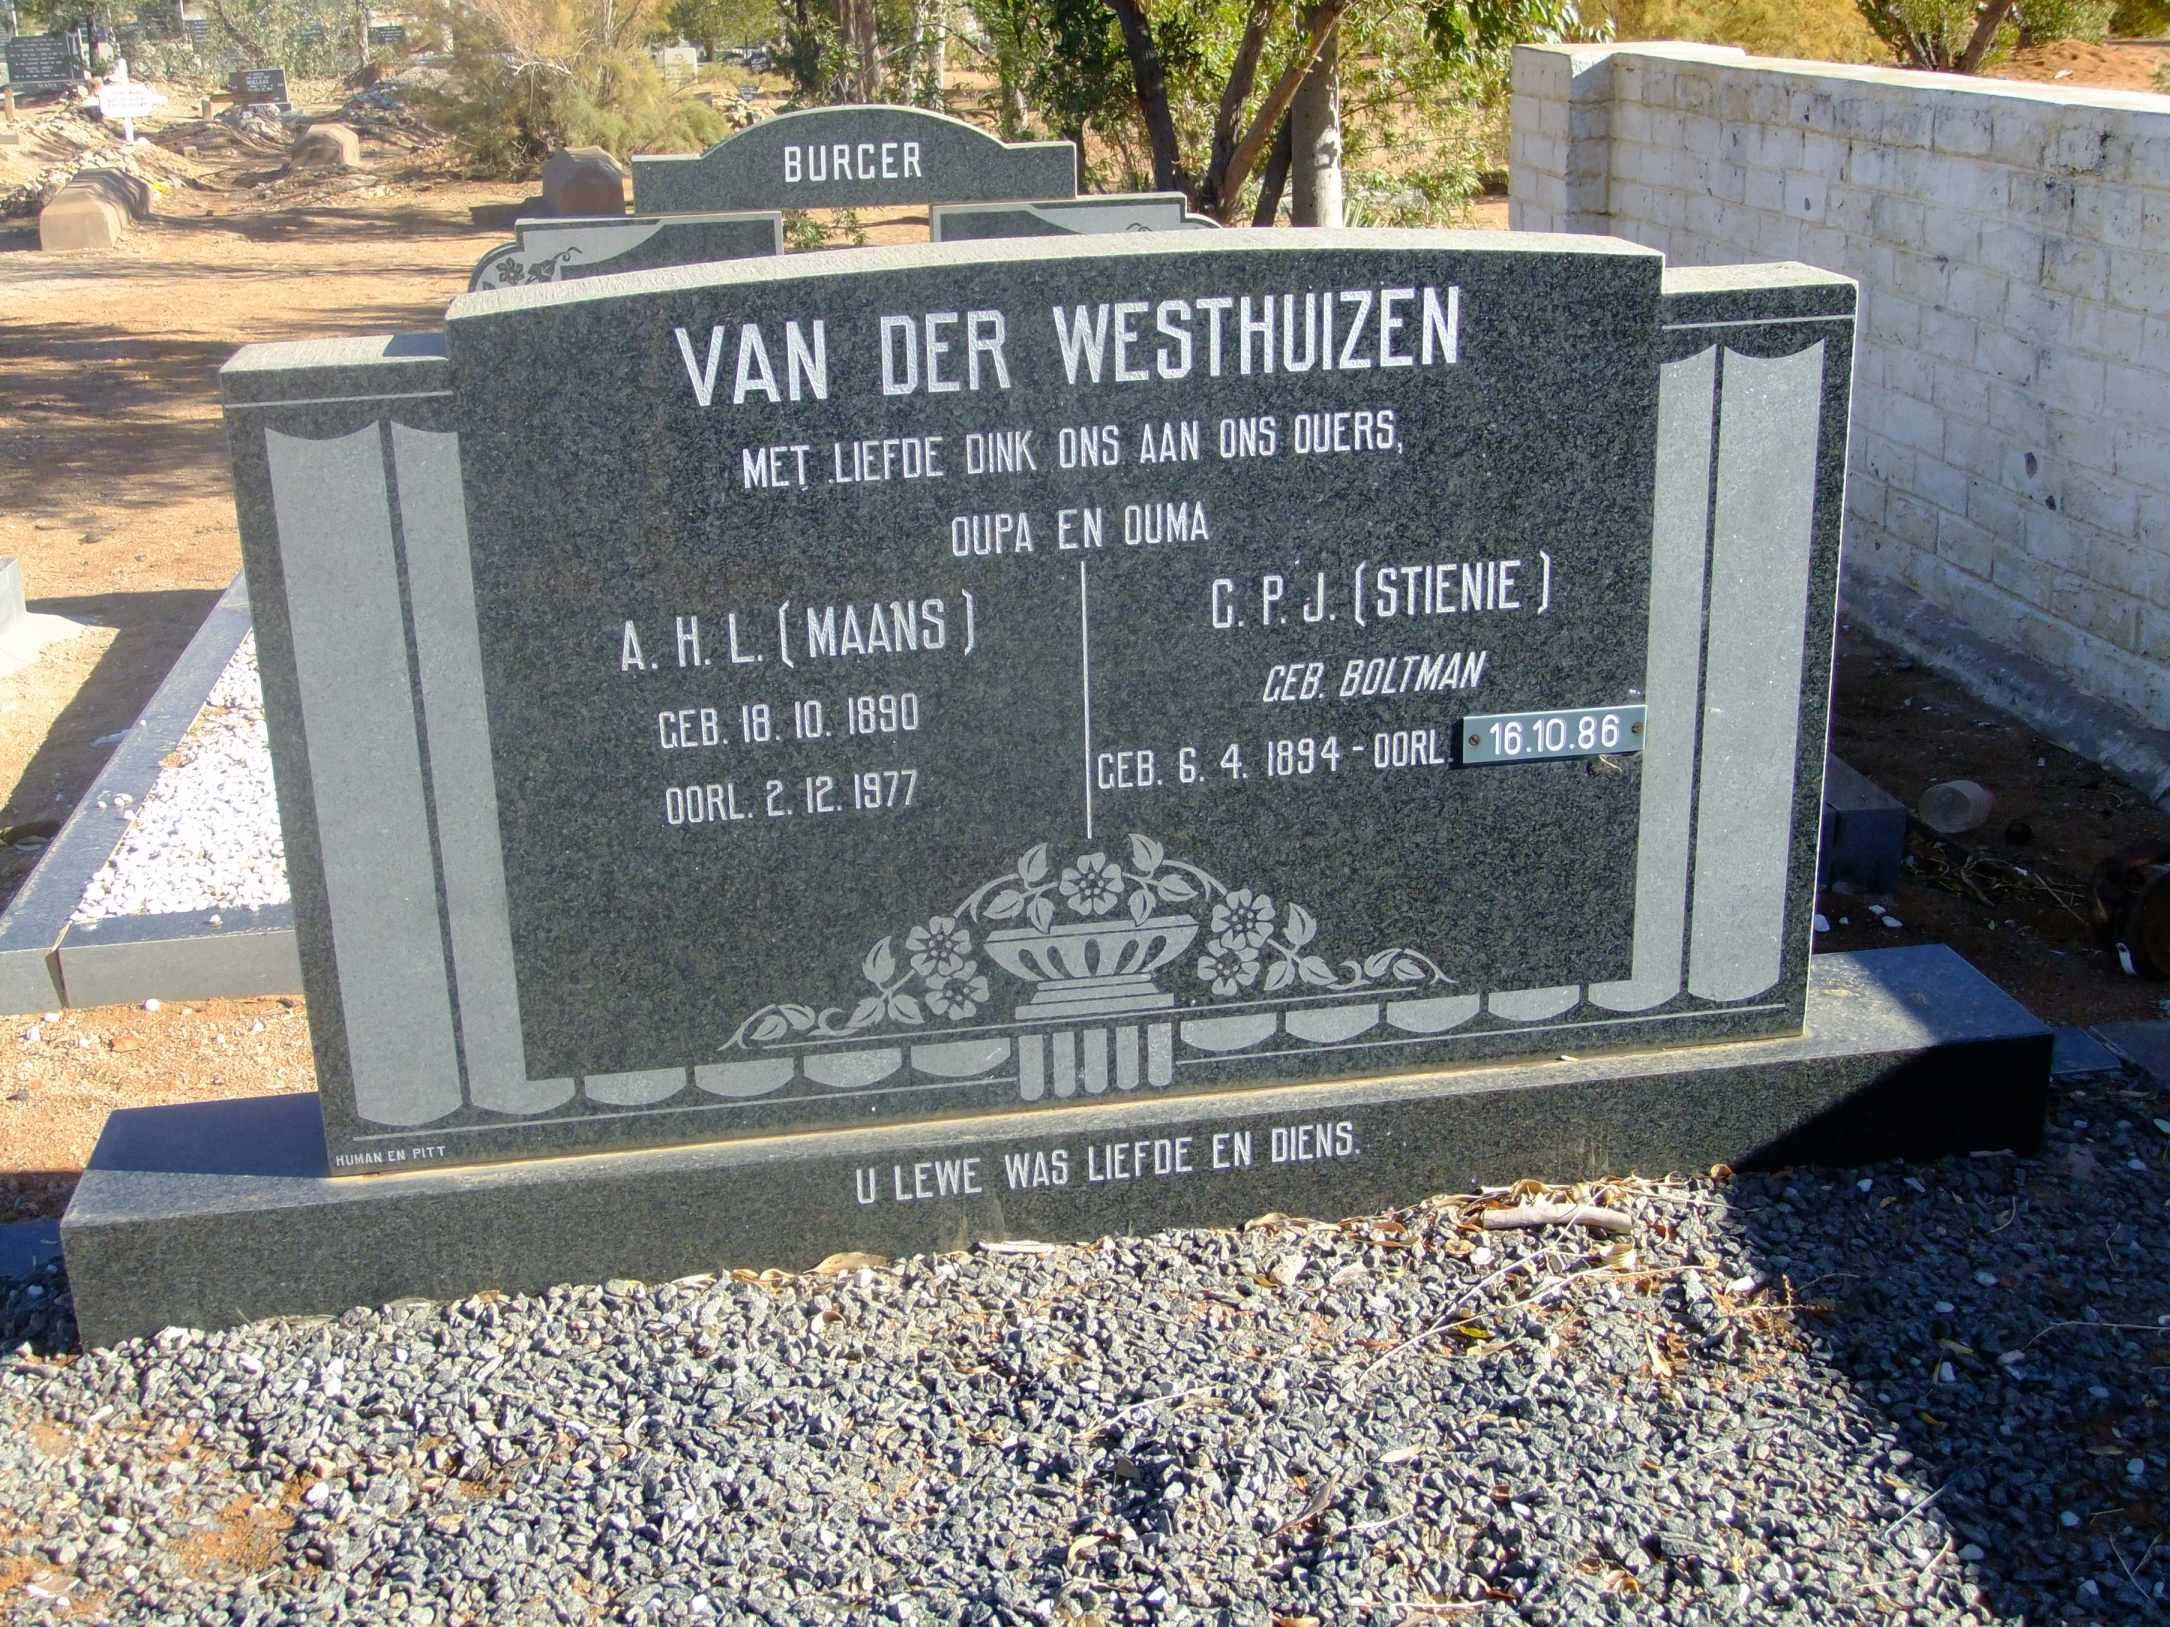 Van der Westhuizen, Maans born 18 October 1890 died 02 December 1977 and Stienie nee Boltman born 06 April 1894 died 16 October 1986